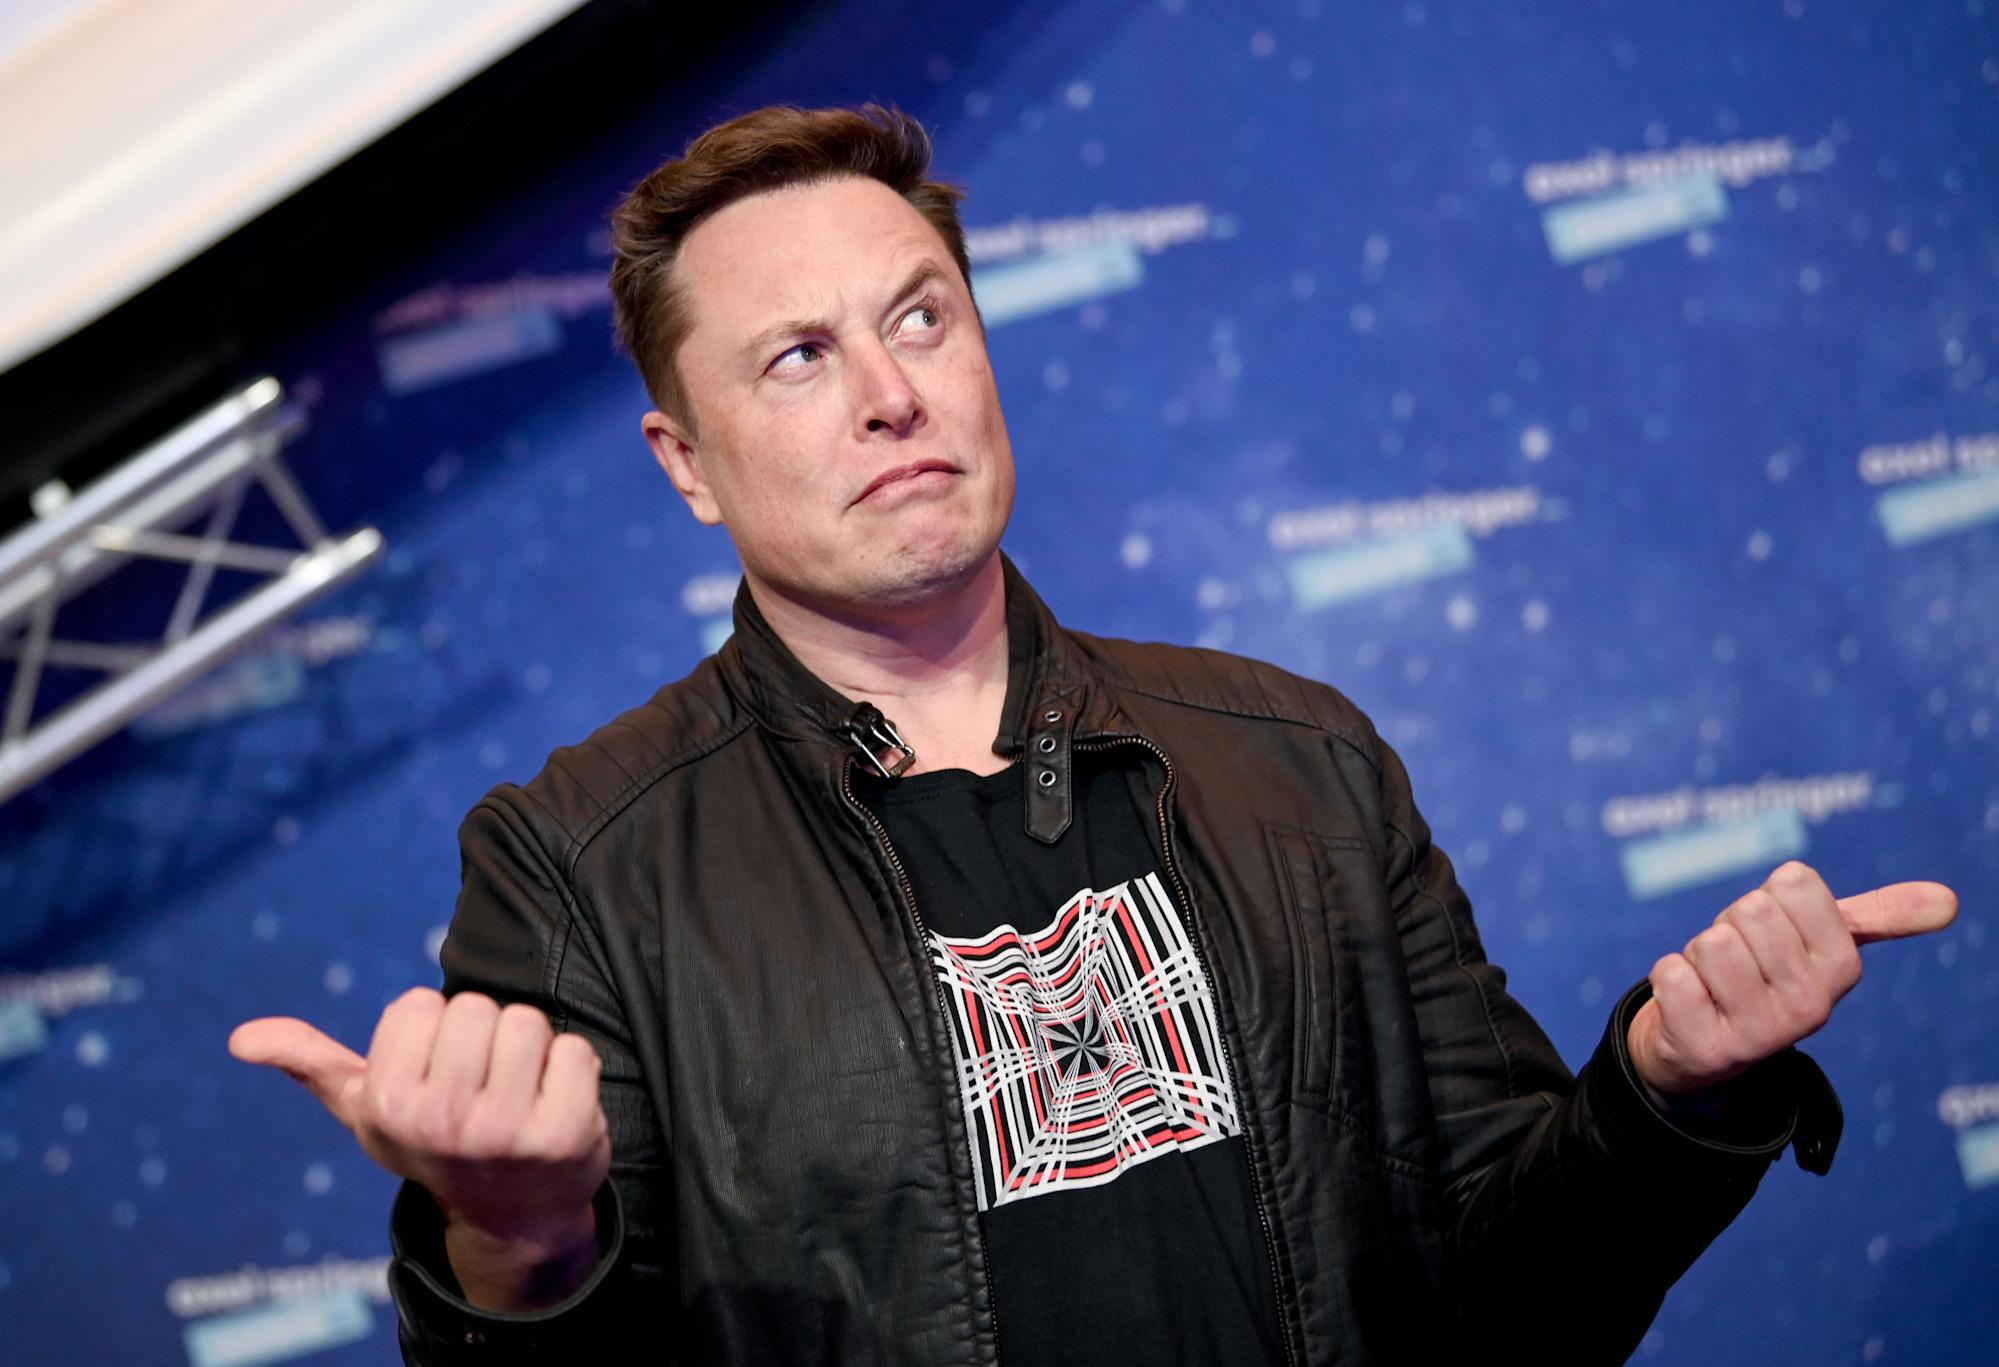 Elon Musk's 1-word tweet pumped $5bn into this stock